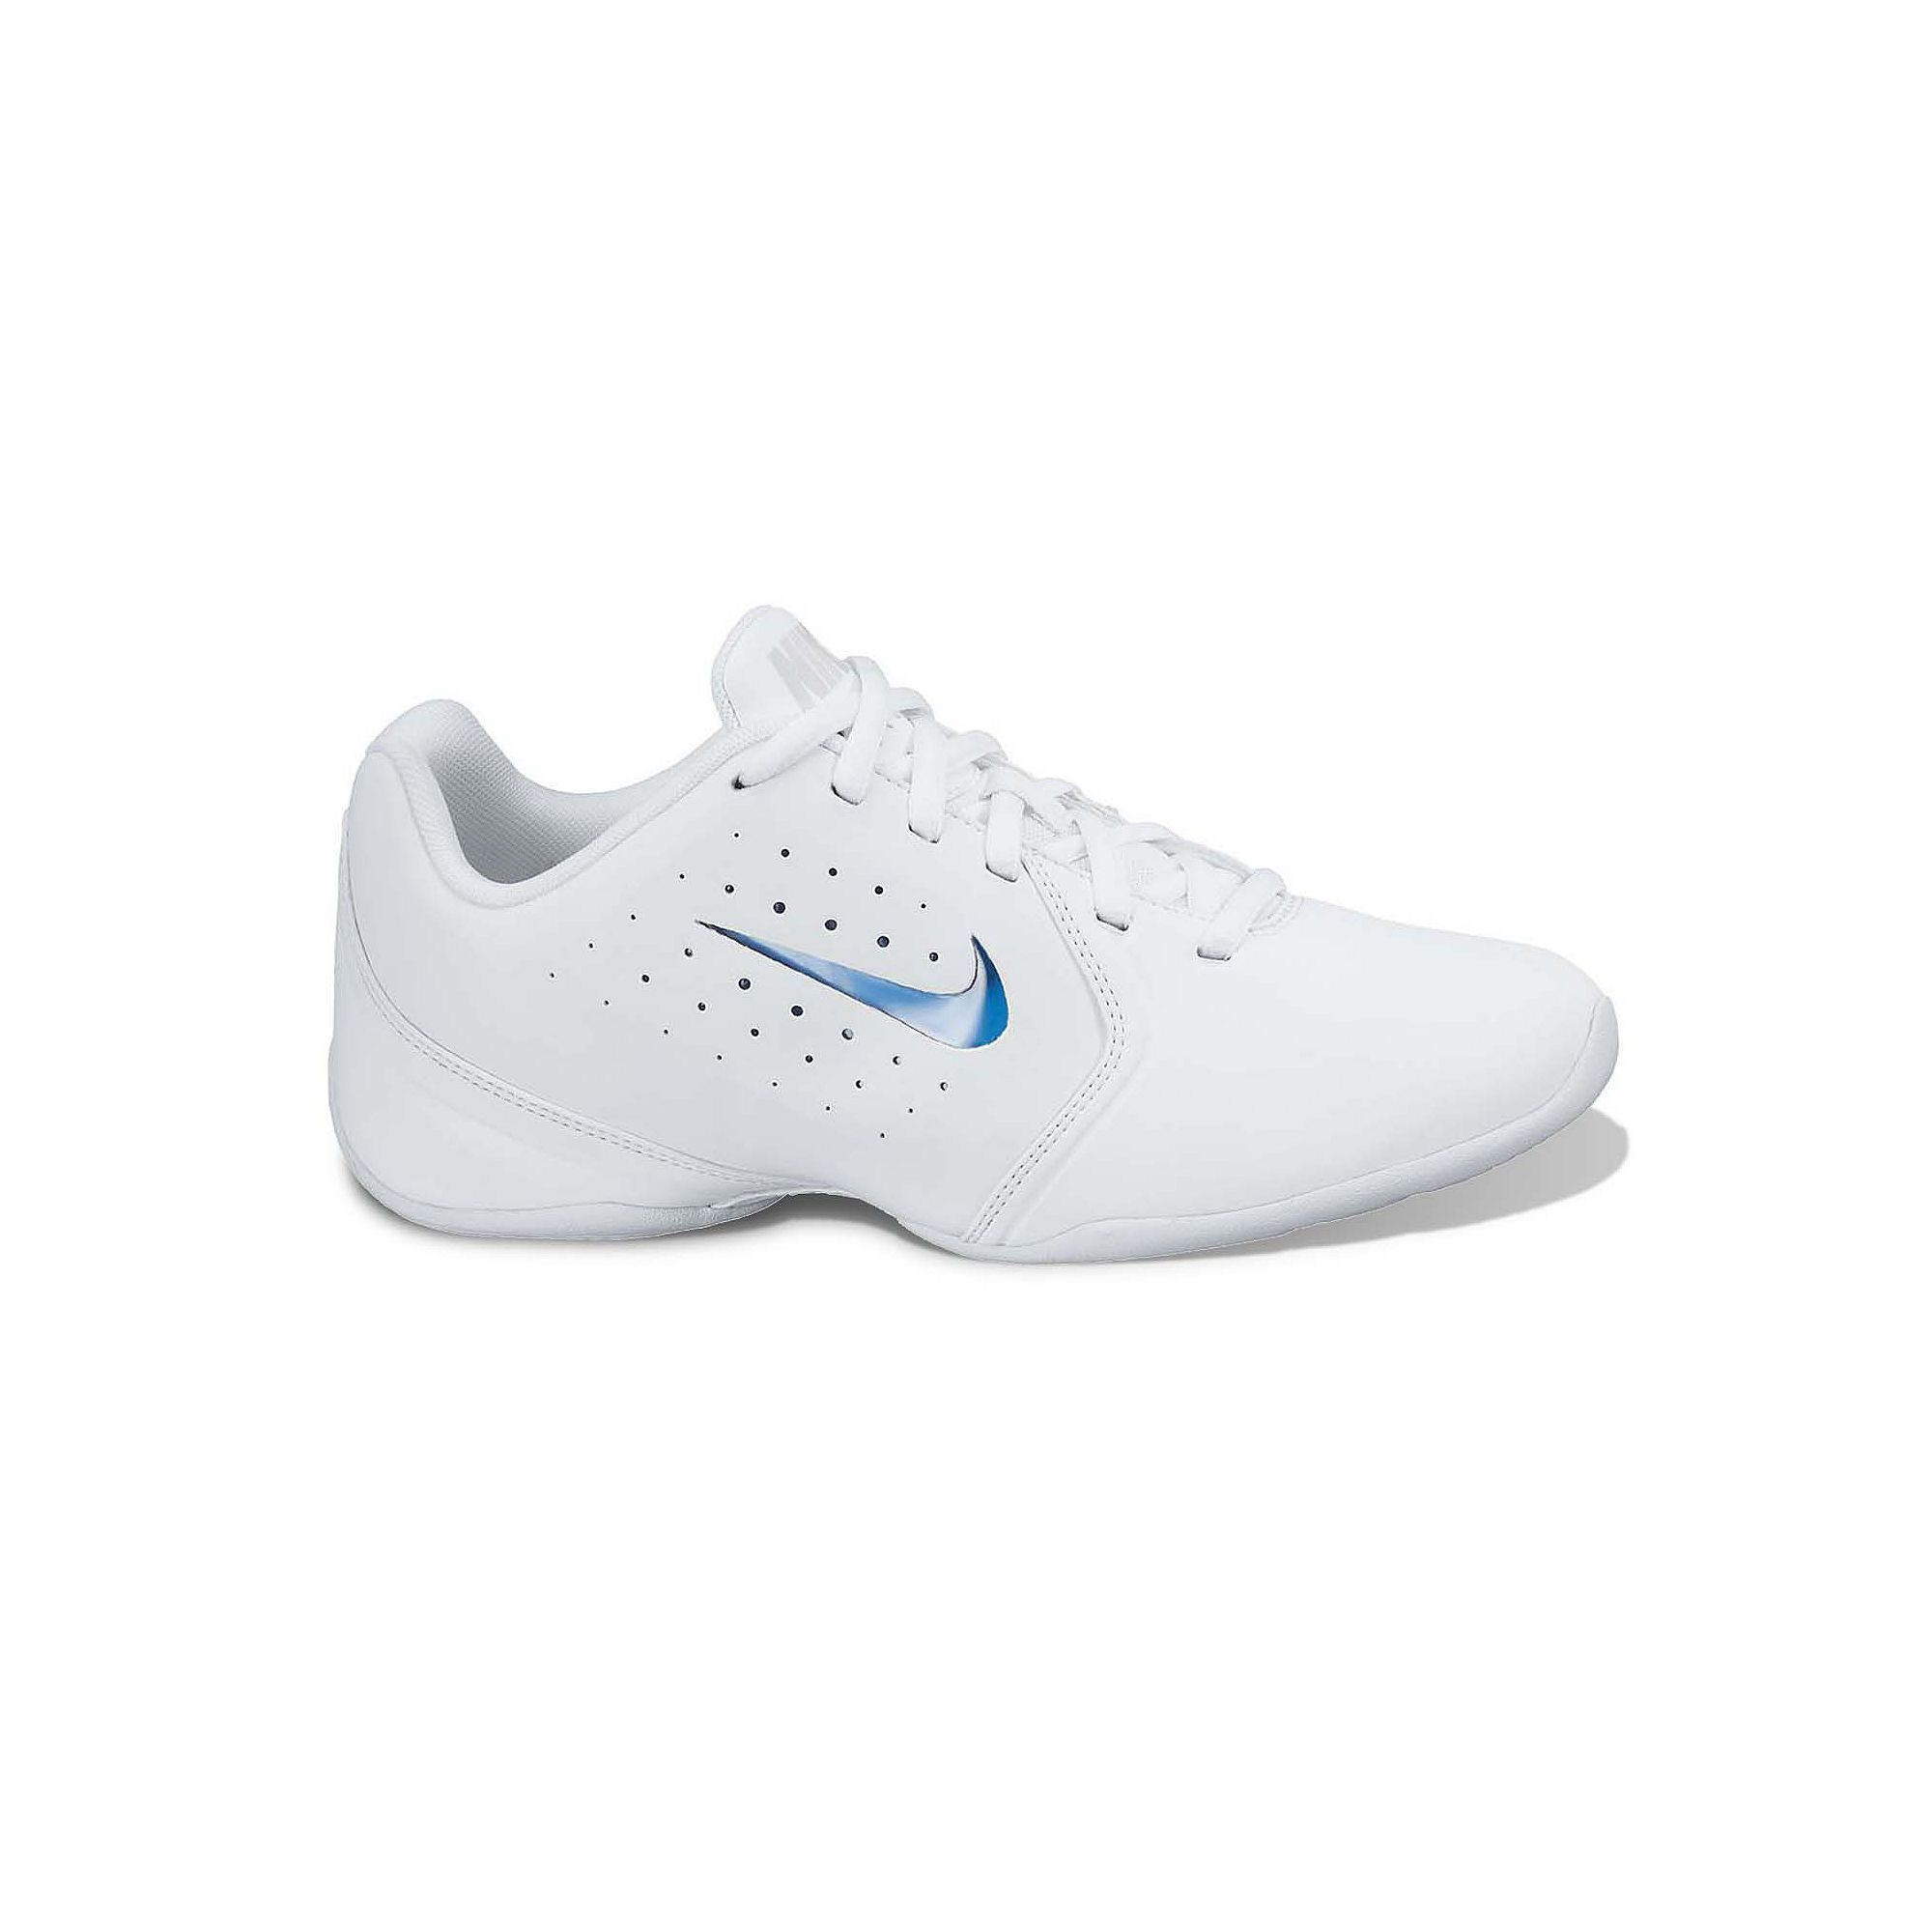 98d7440394368 Nike Sideline III Insert Cheer Shoes - Women | Products | Cheer ...